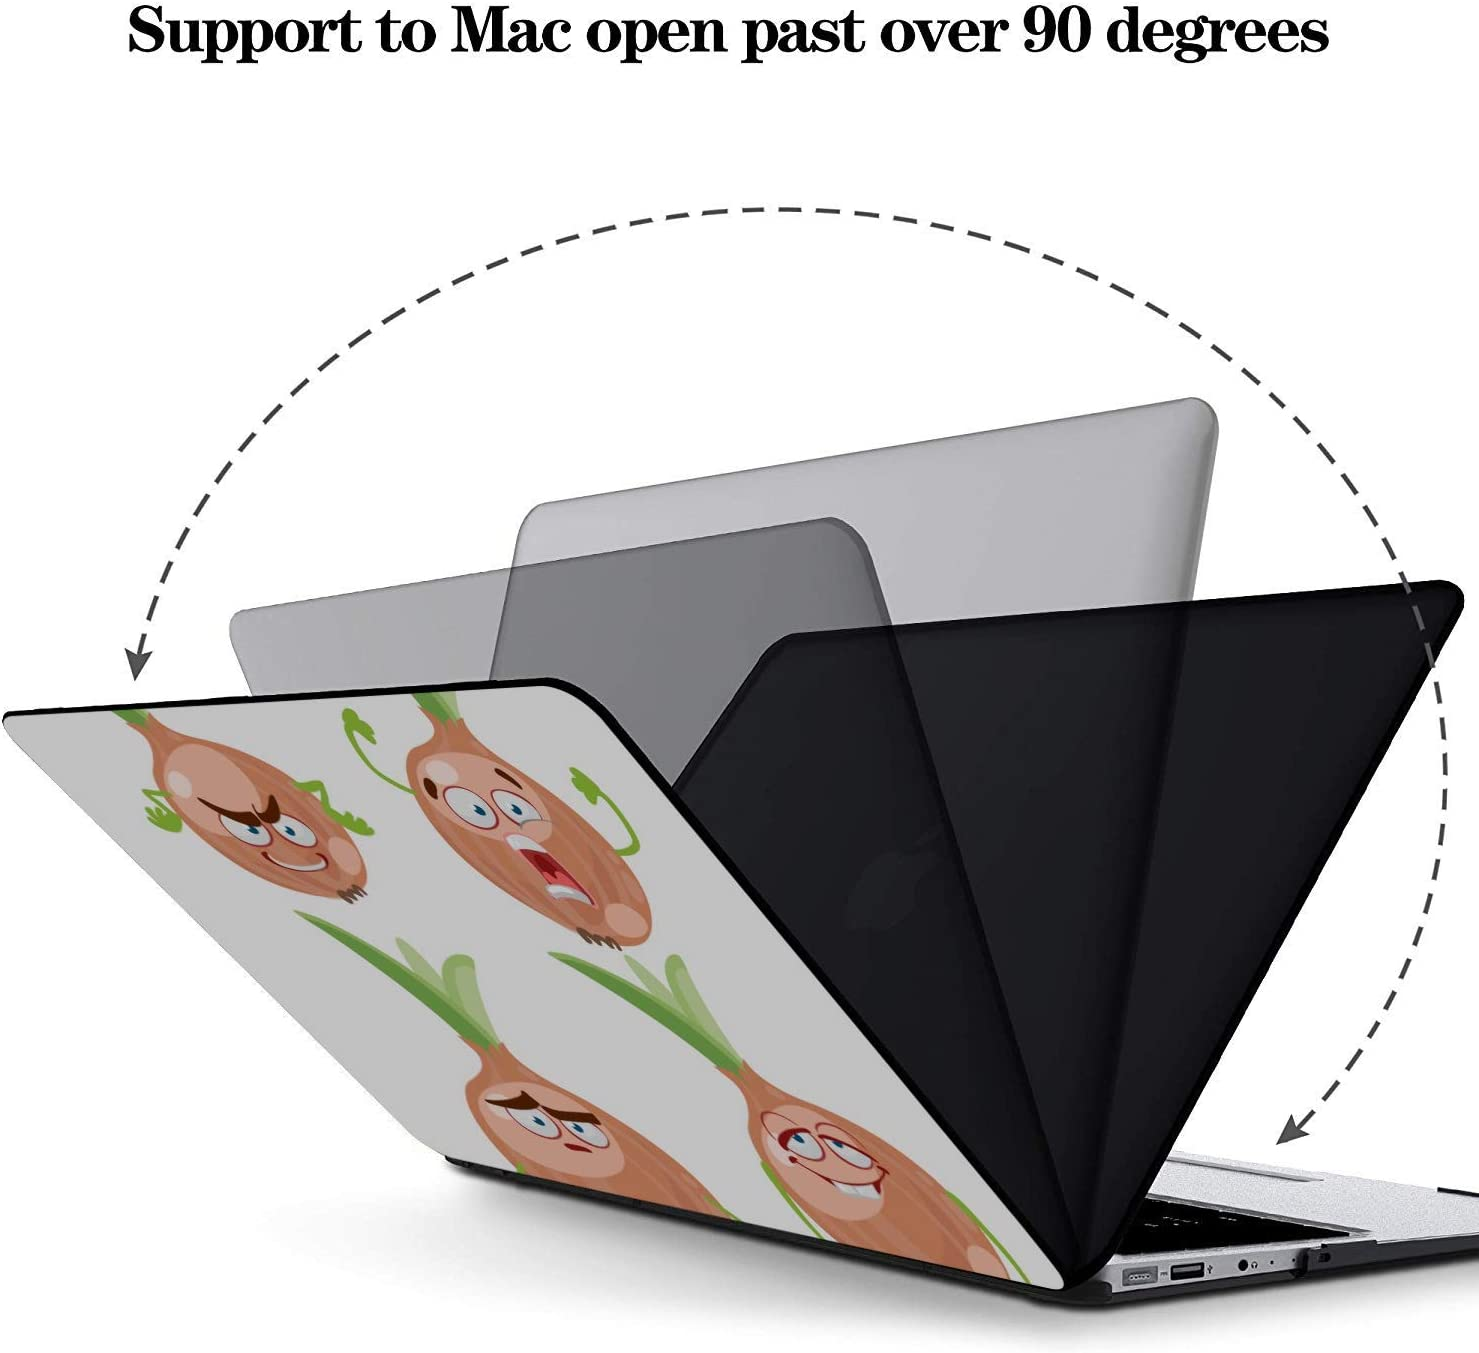 MacBook Air Case A1466 Cartoon Smiling Onion Vegetables Plastic Hard Shell Compatible Mac Air 11 Pro 13 15 MacBook Accessories 13 Inch Protection for MacBook 2016-2019 Version